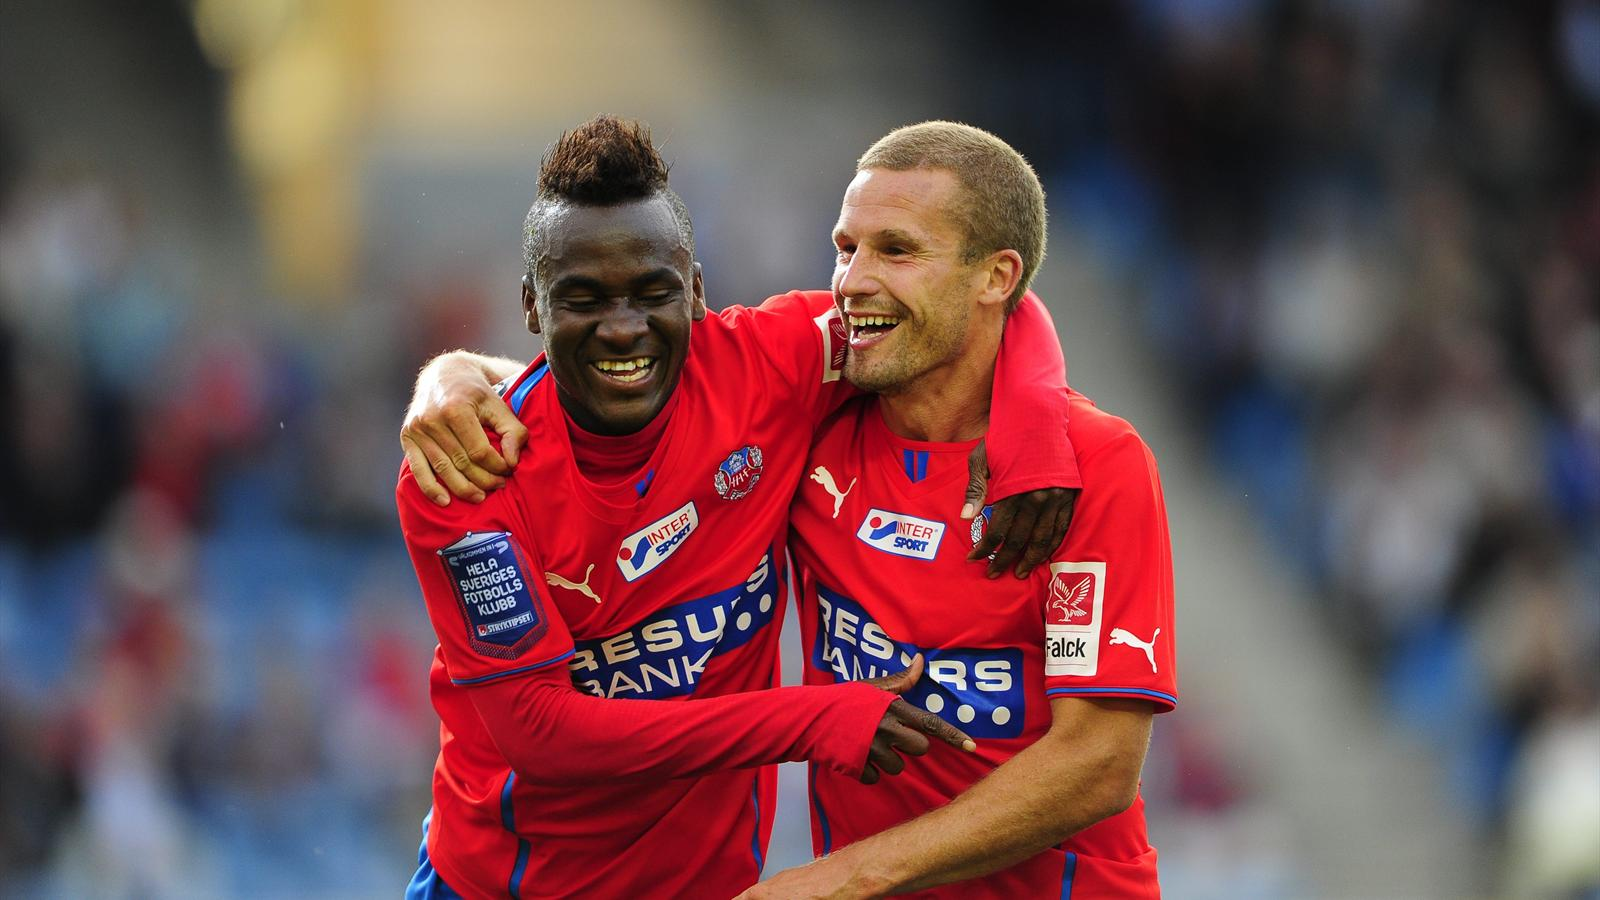 David 'King' Accam scored for Helsingborg